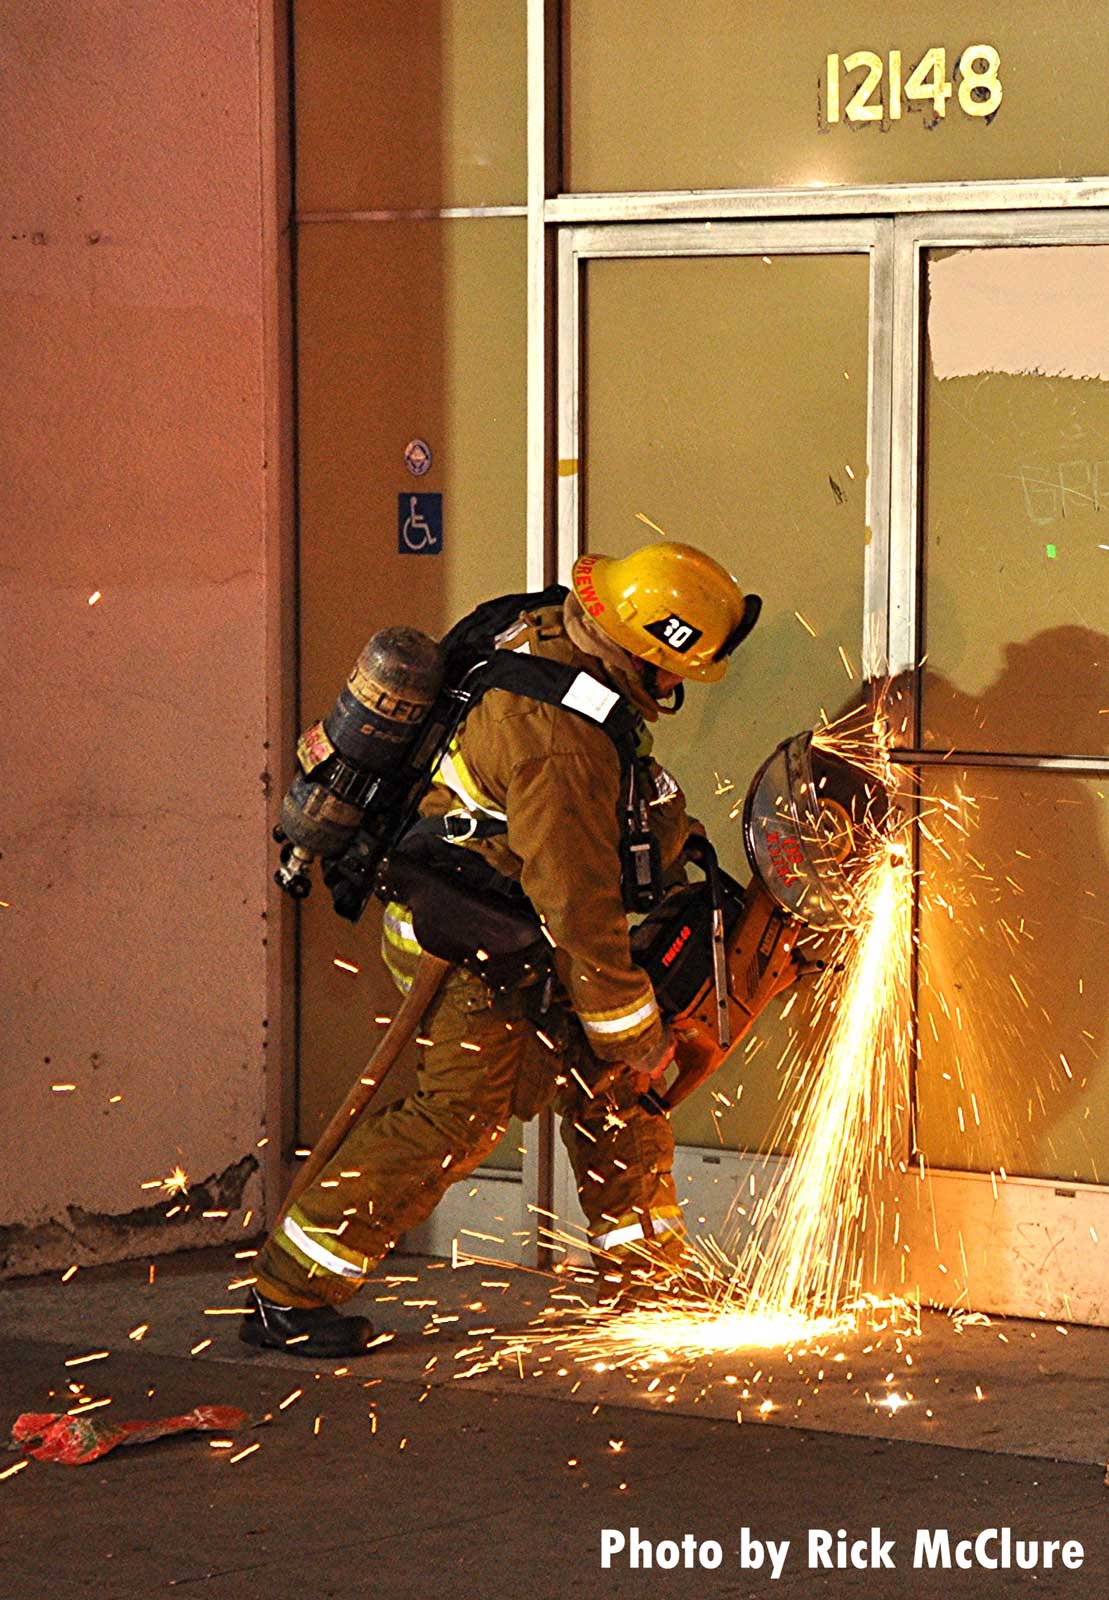 LAFD firefighter using a power saw to cut through a door